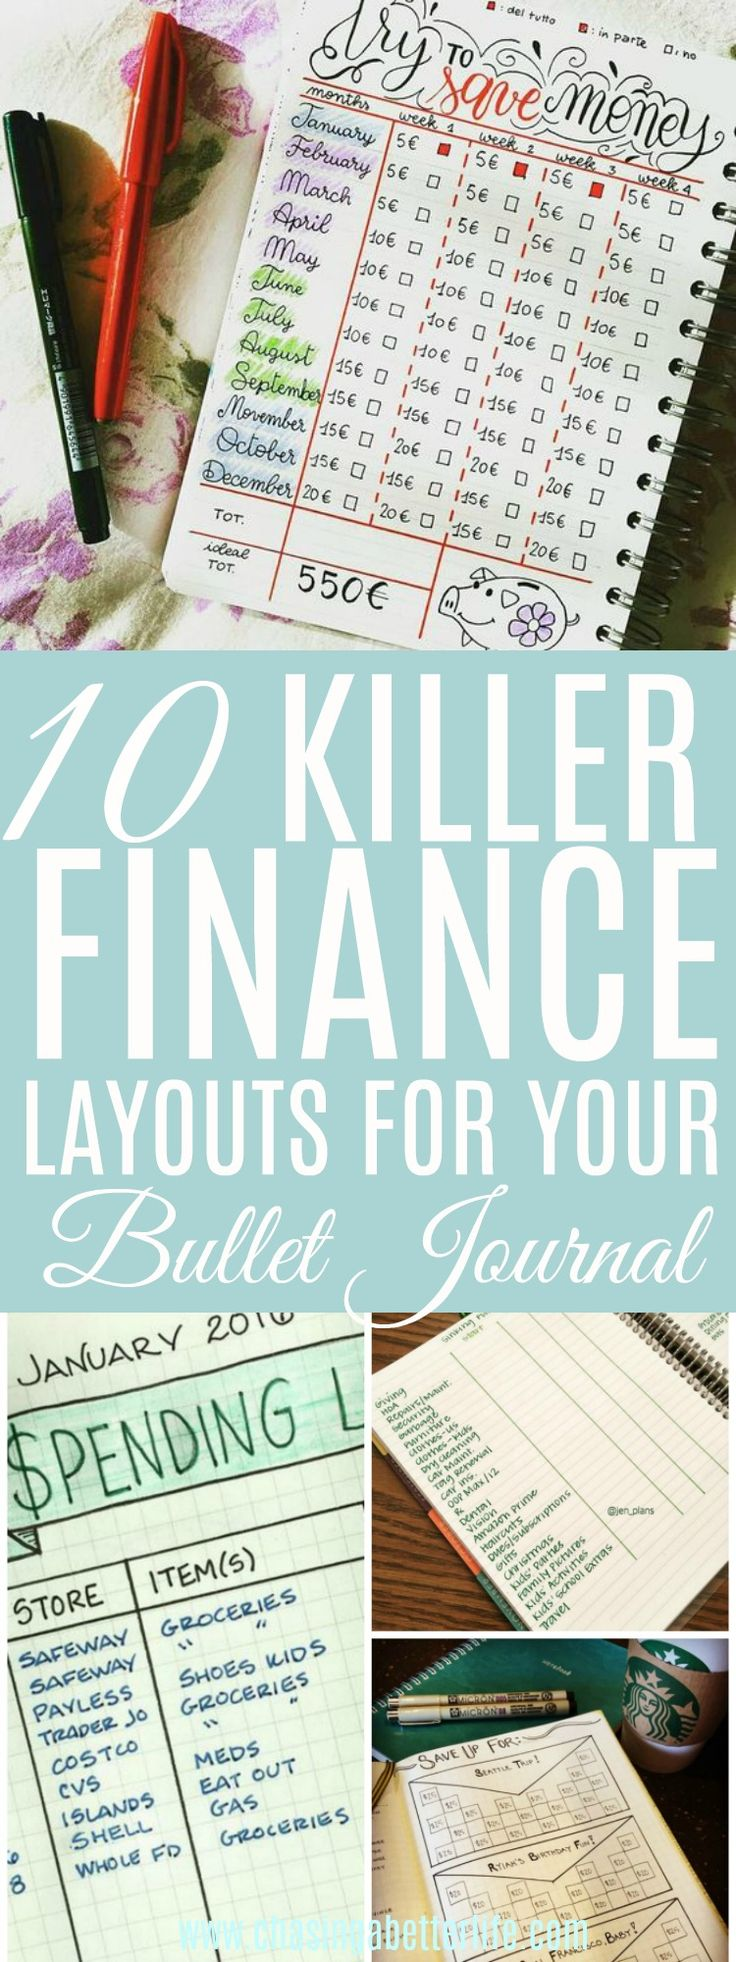 This will totally help me get my finances on track within my bullet journal! Can't wait to track my progress with baby steps, 3-6 month savings, etc!